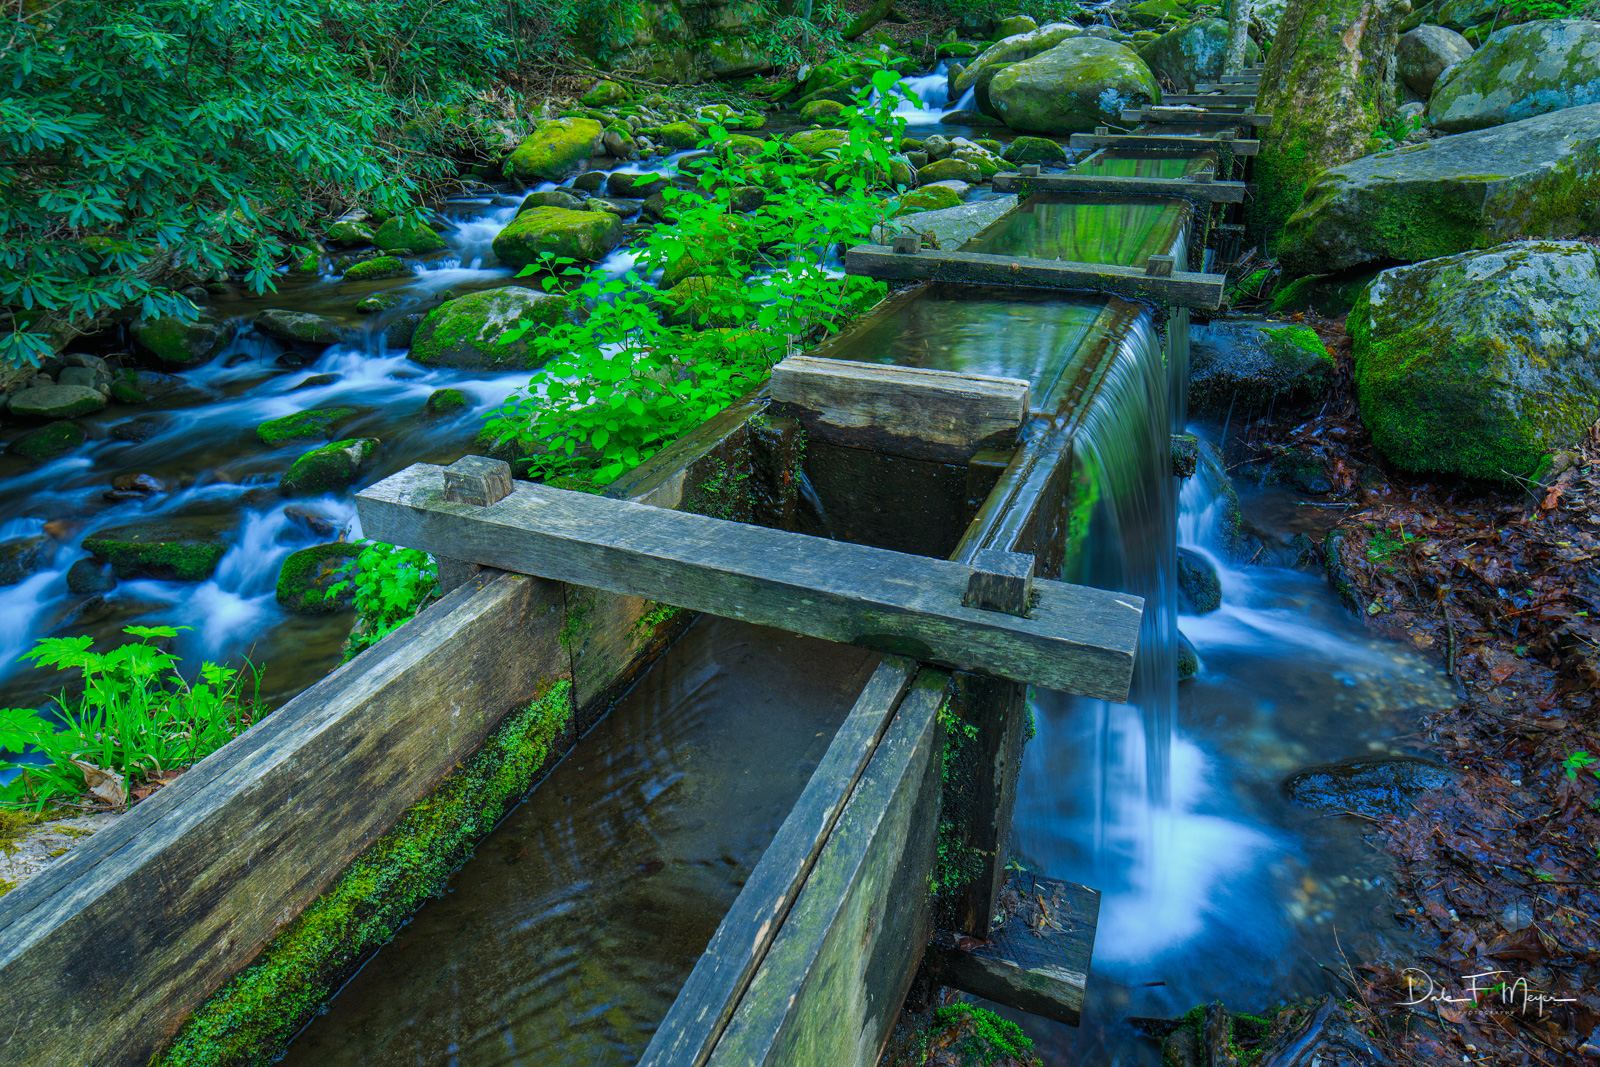 A section of the Old Flume that was built to feed water to the old Reagans Mill built in 1895 next to the Roaring Fork Creek...